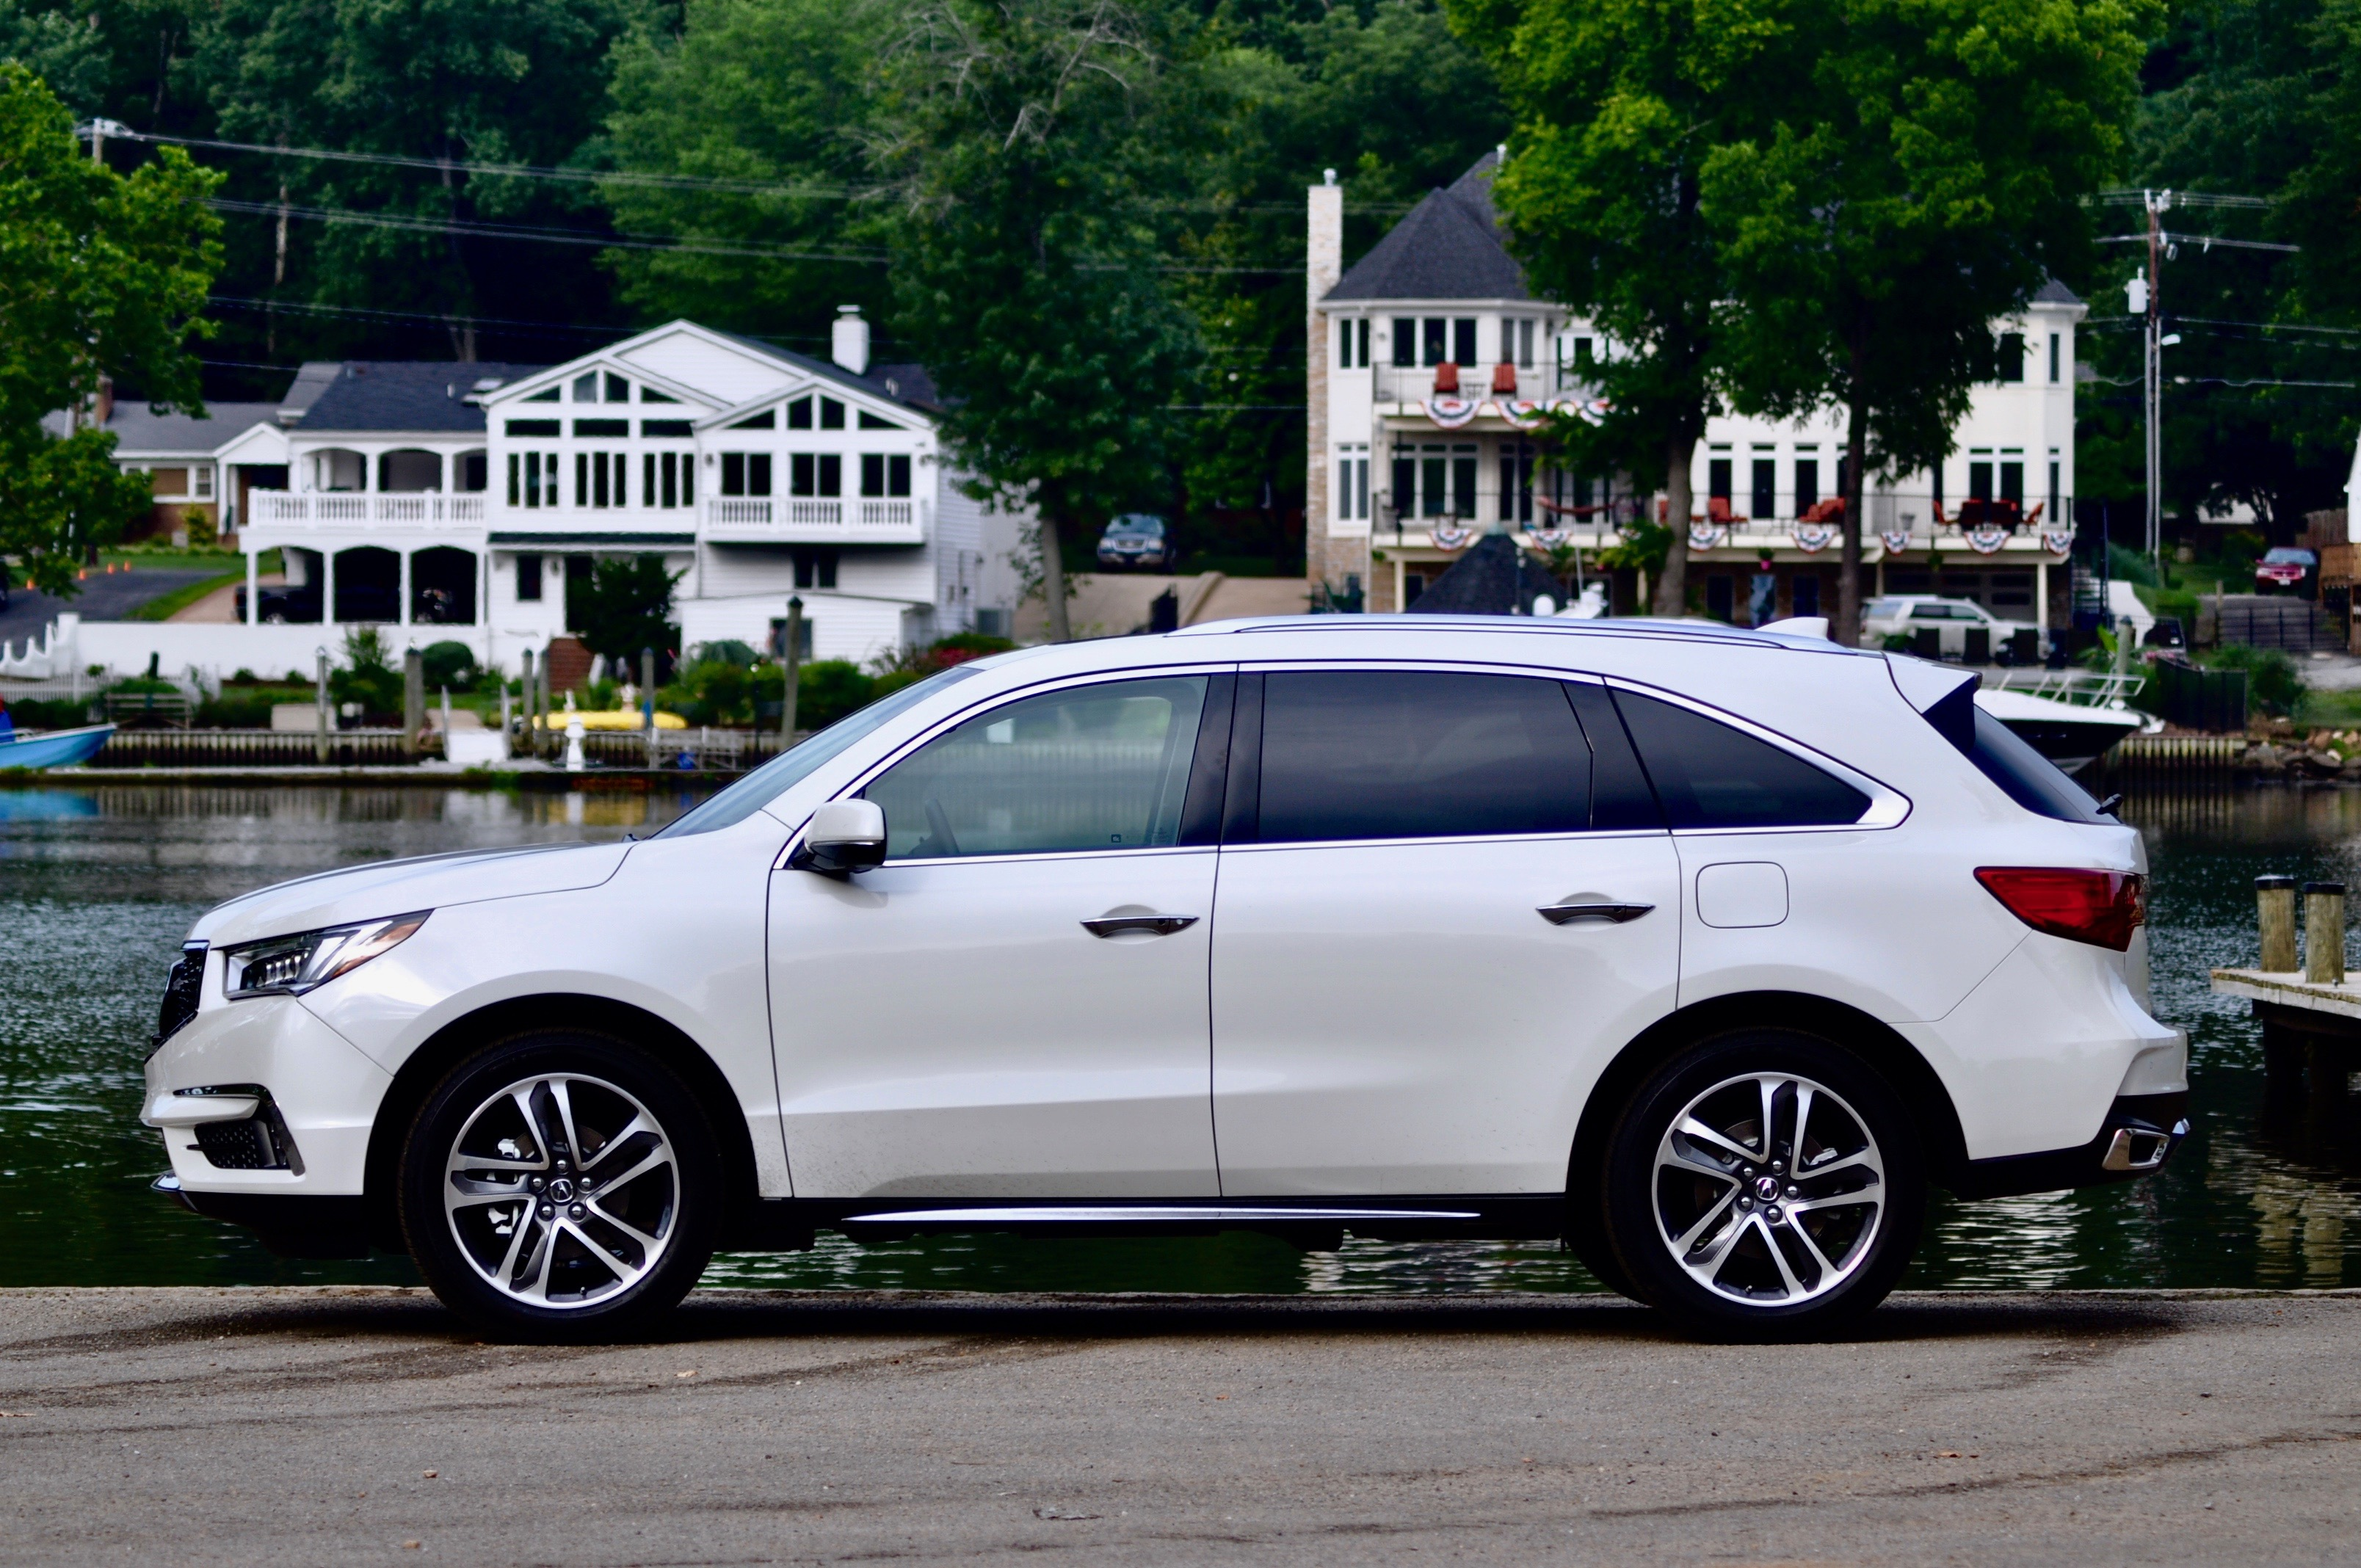 time all luxury for mdx by selling suv the earned acura of dsc s sh world money best report news row has also three u awd